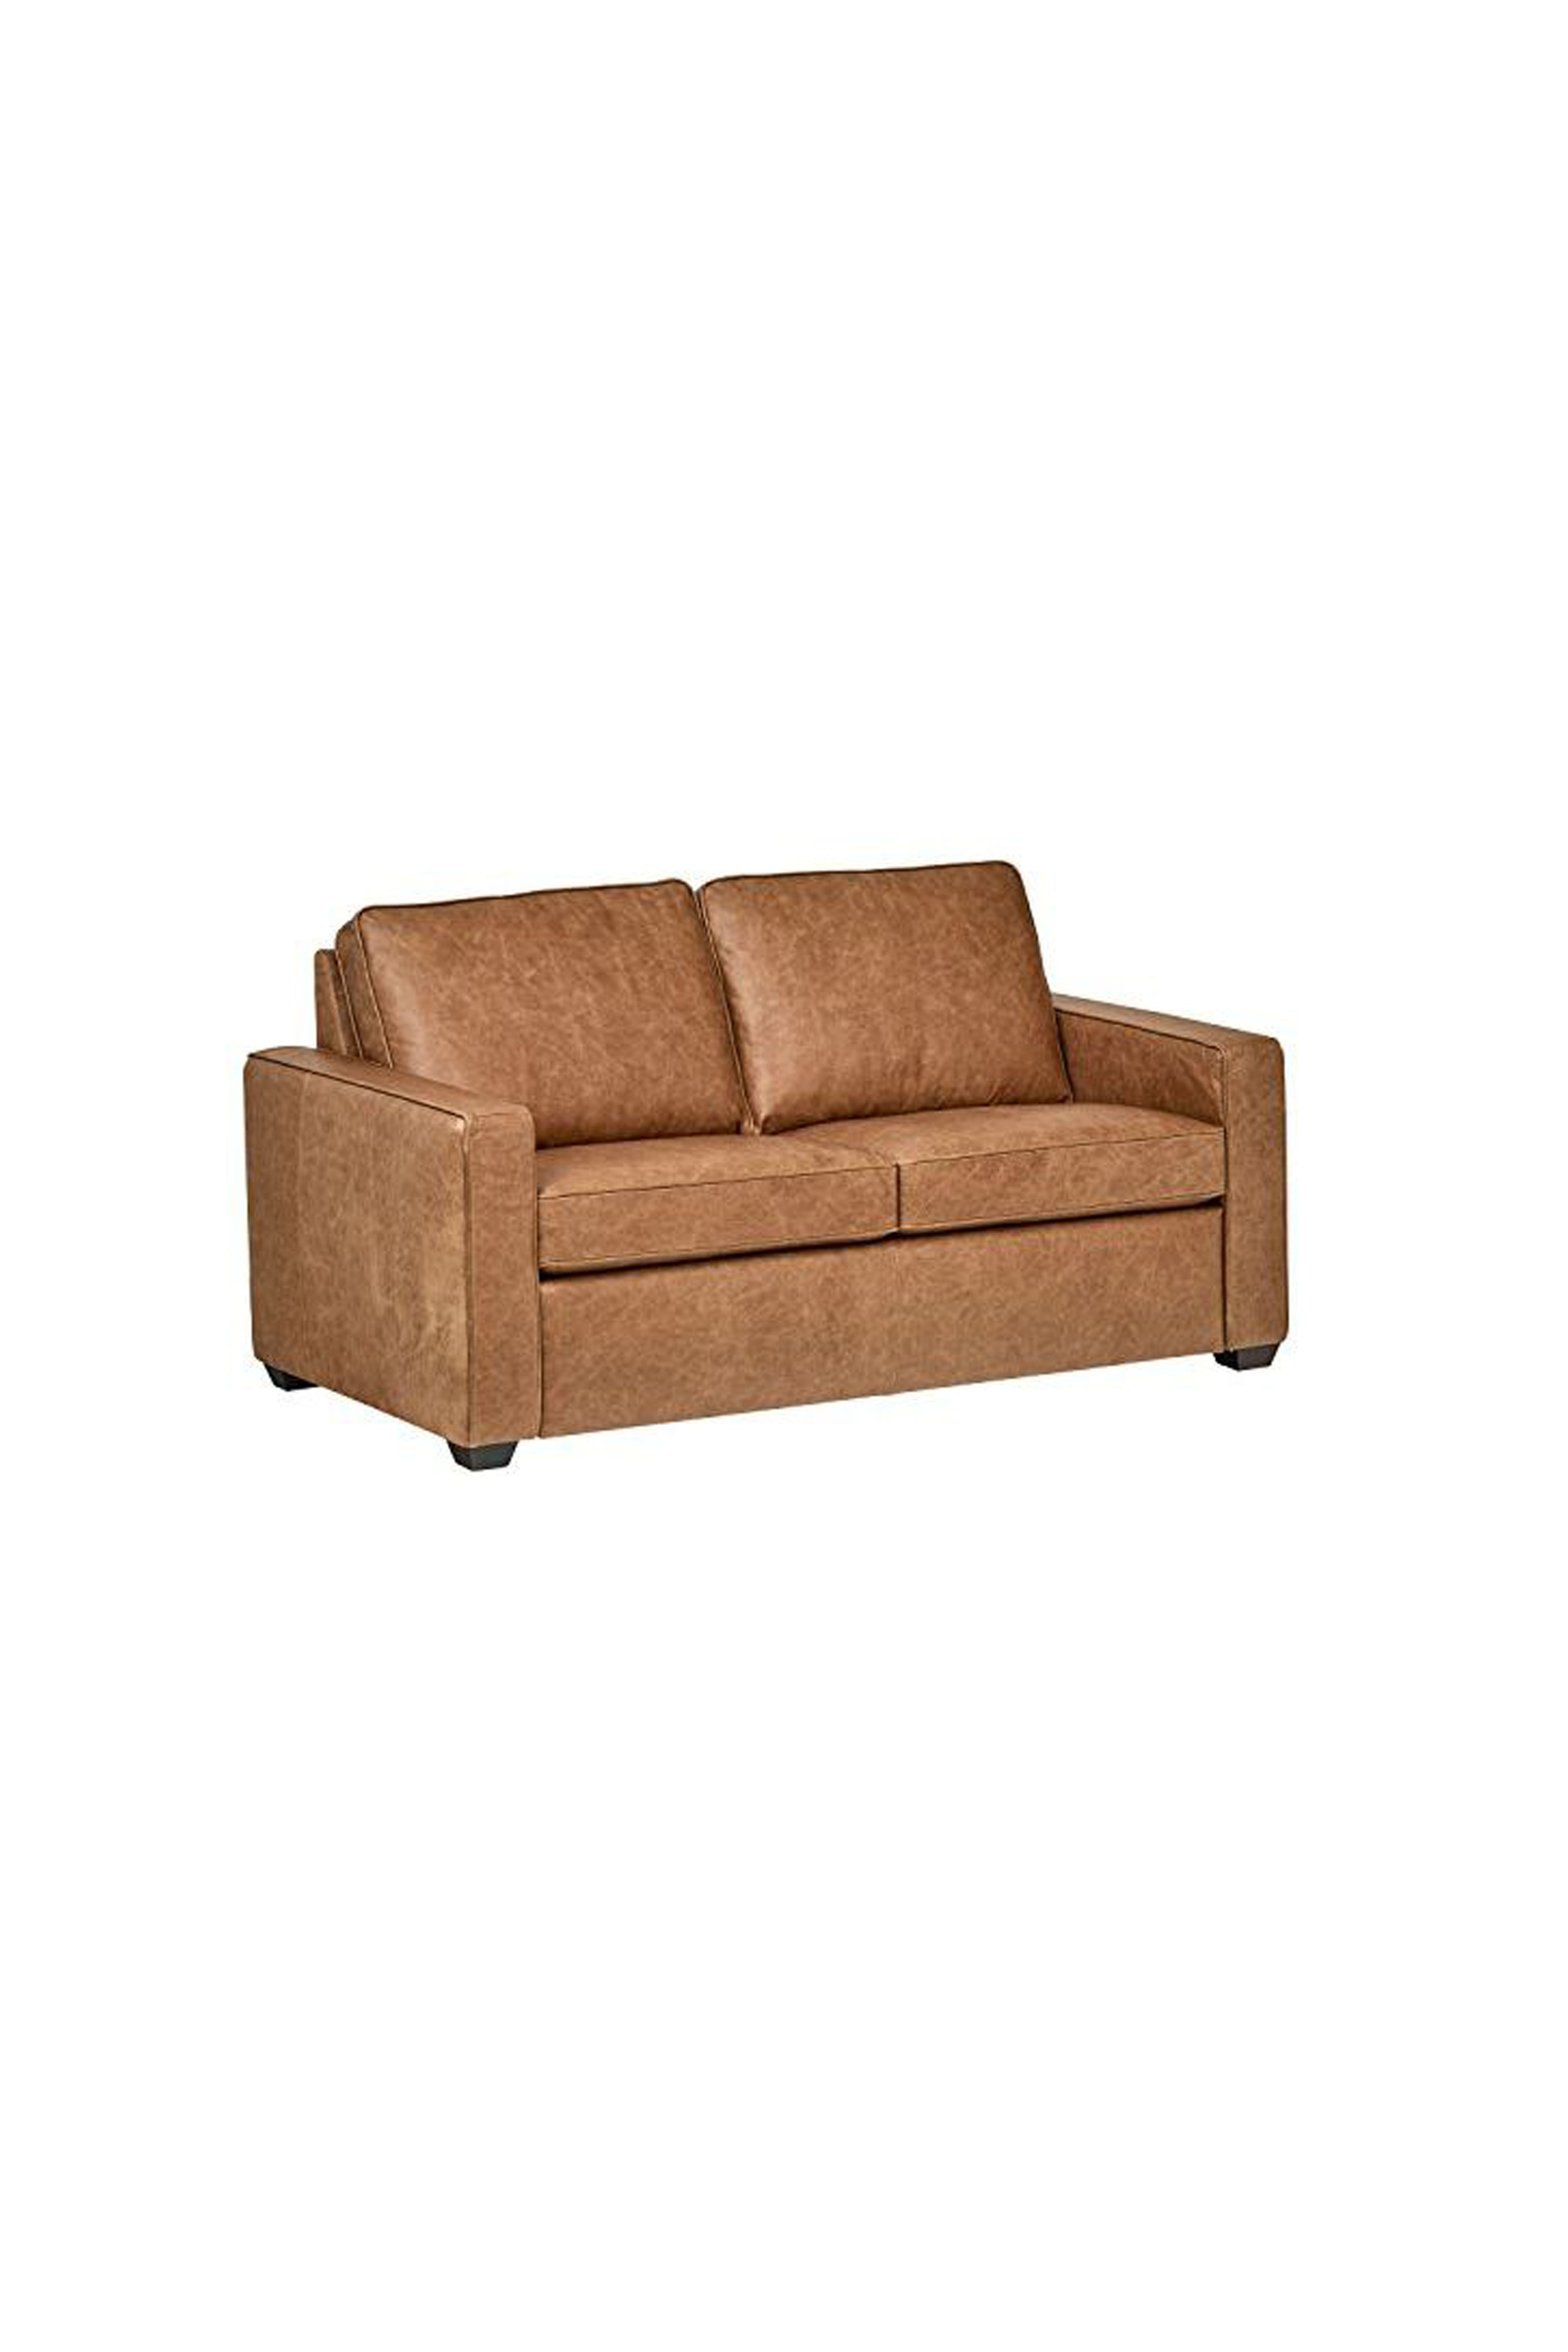 Superb Rivet Andrews Contemporary Top Grain Leather Sofa Evergreenethics Interior Chair Design Evergreenethicsorg